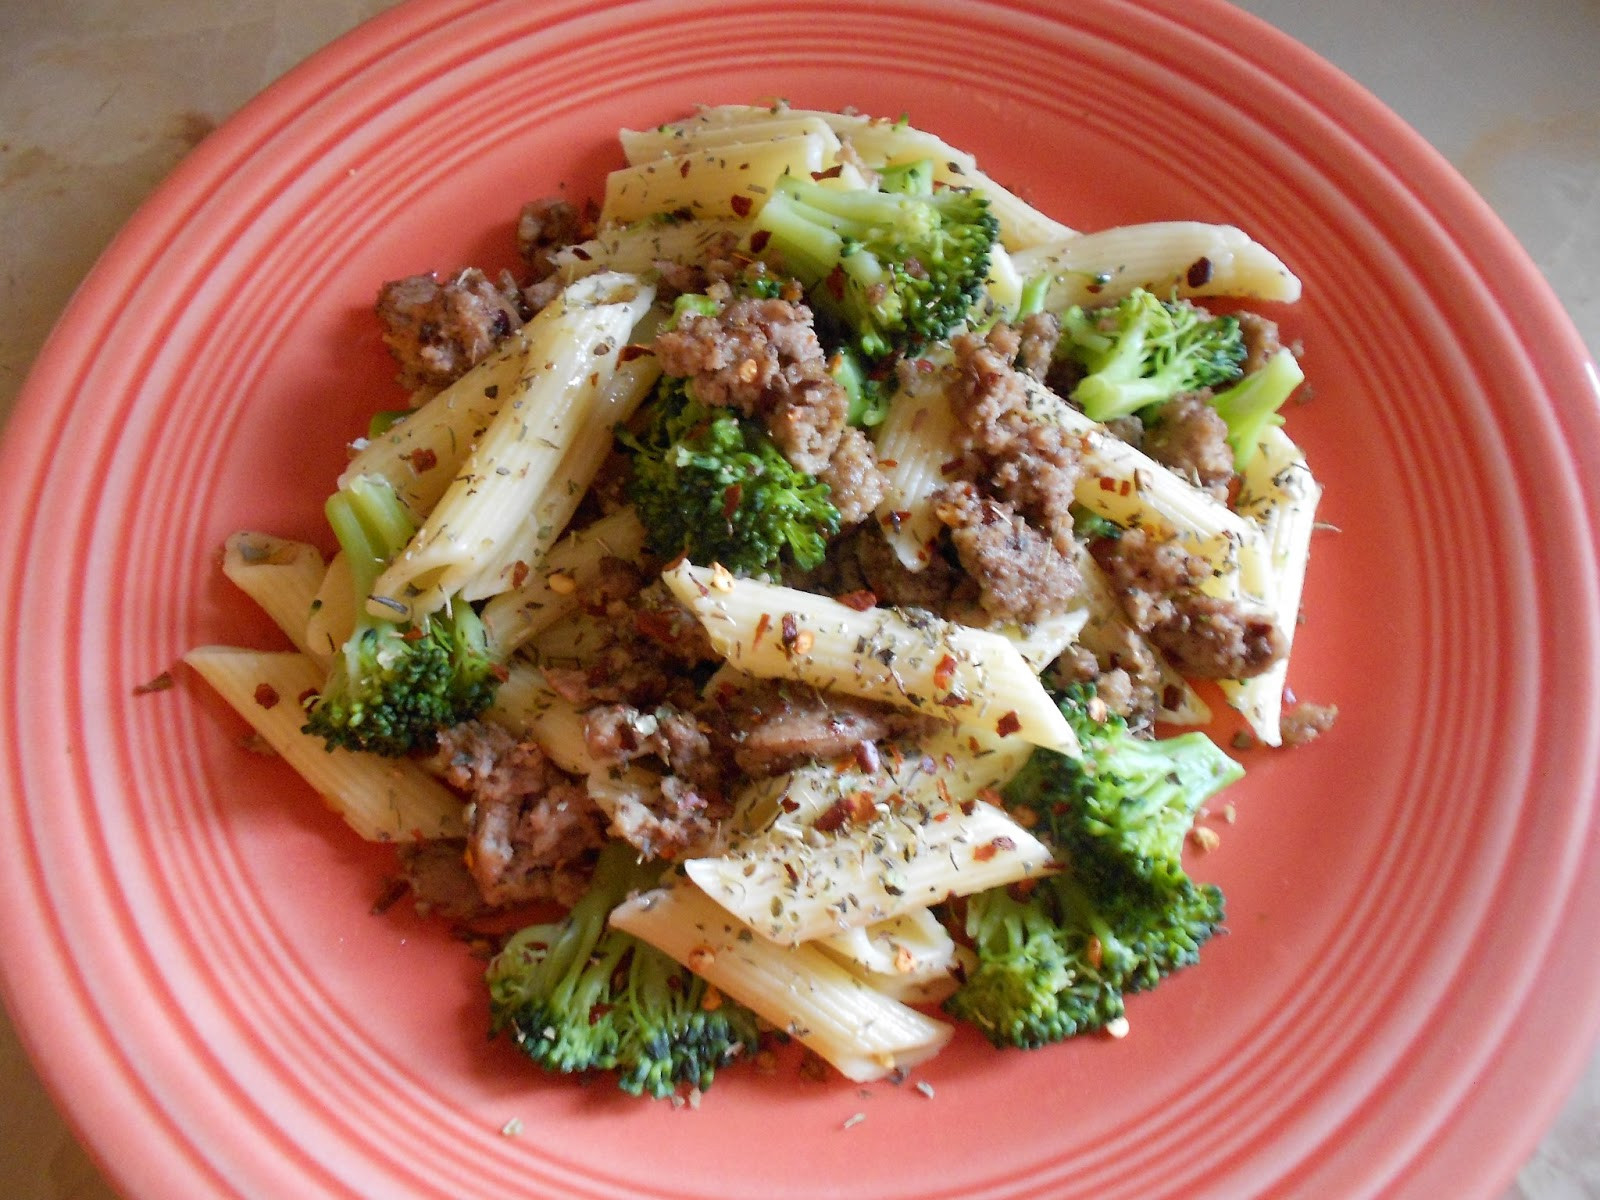 Healthy Ground Turkey Pasta Recipes  A Healthy Dinner Pasta With Ground Turkey and Broccoli